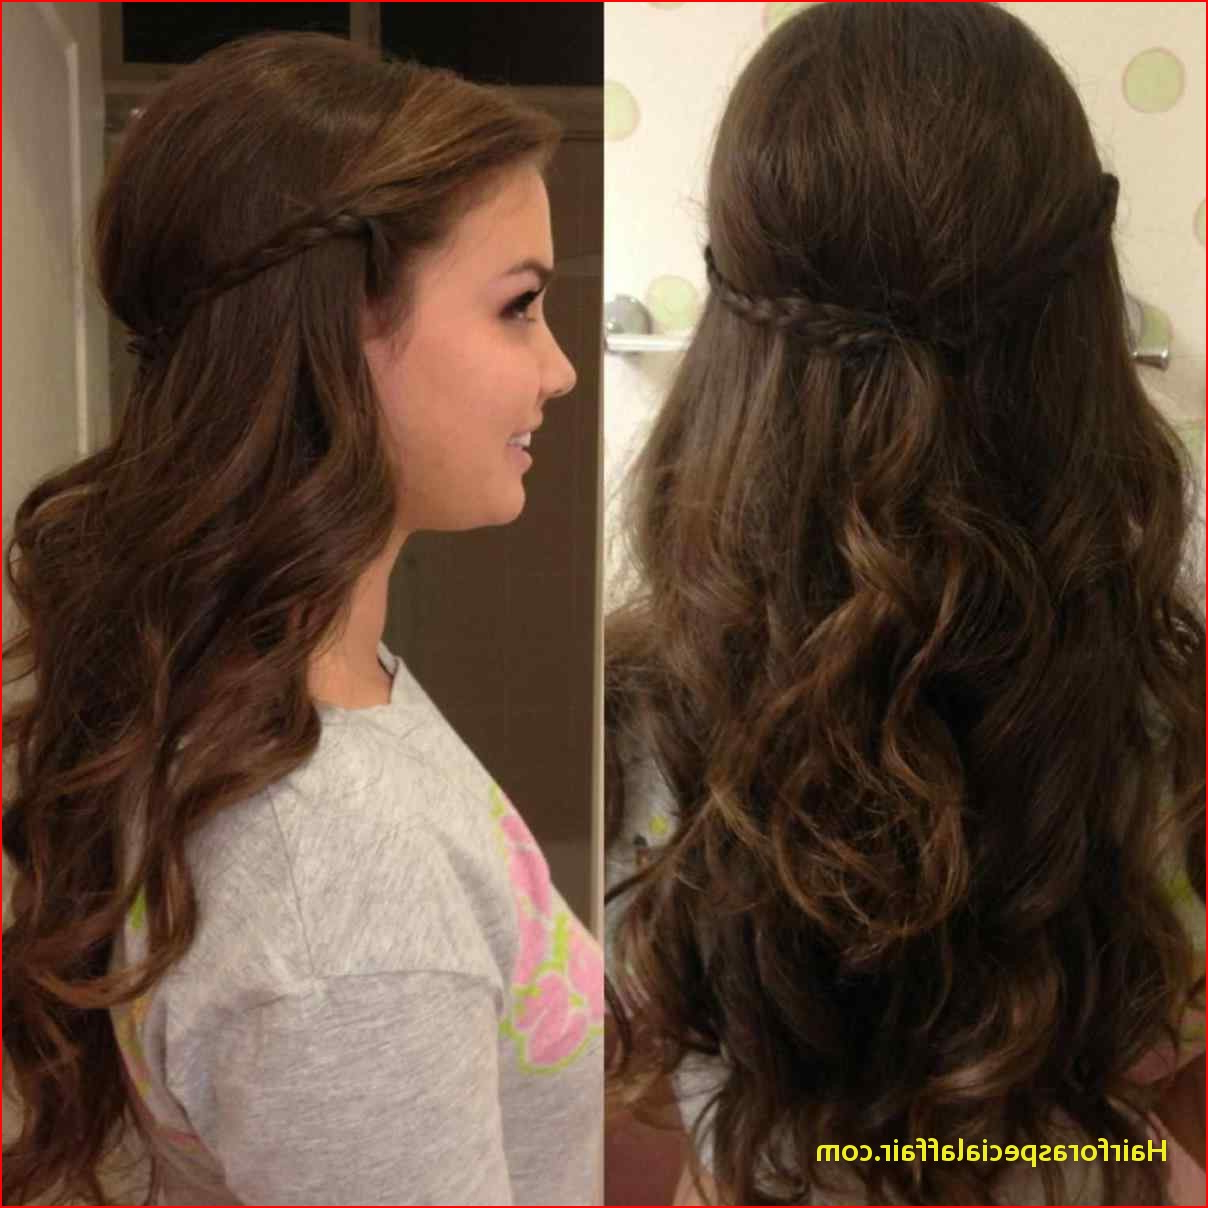 Cute Hairstyles For Long Hair Tumblr Hair Curly Prom Hairstyles Intended For Short Curly Haircuts Tumblr (View 7 of 25)